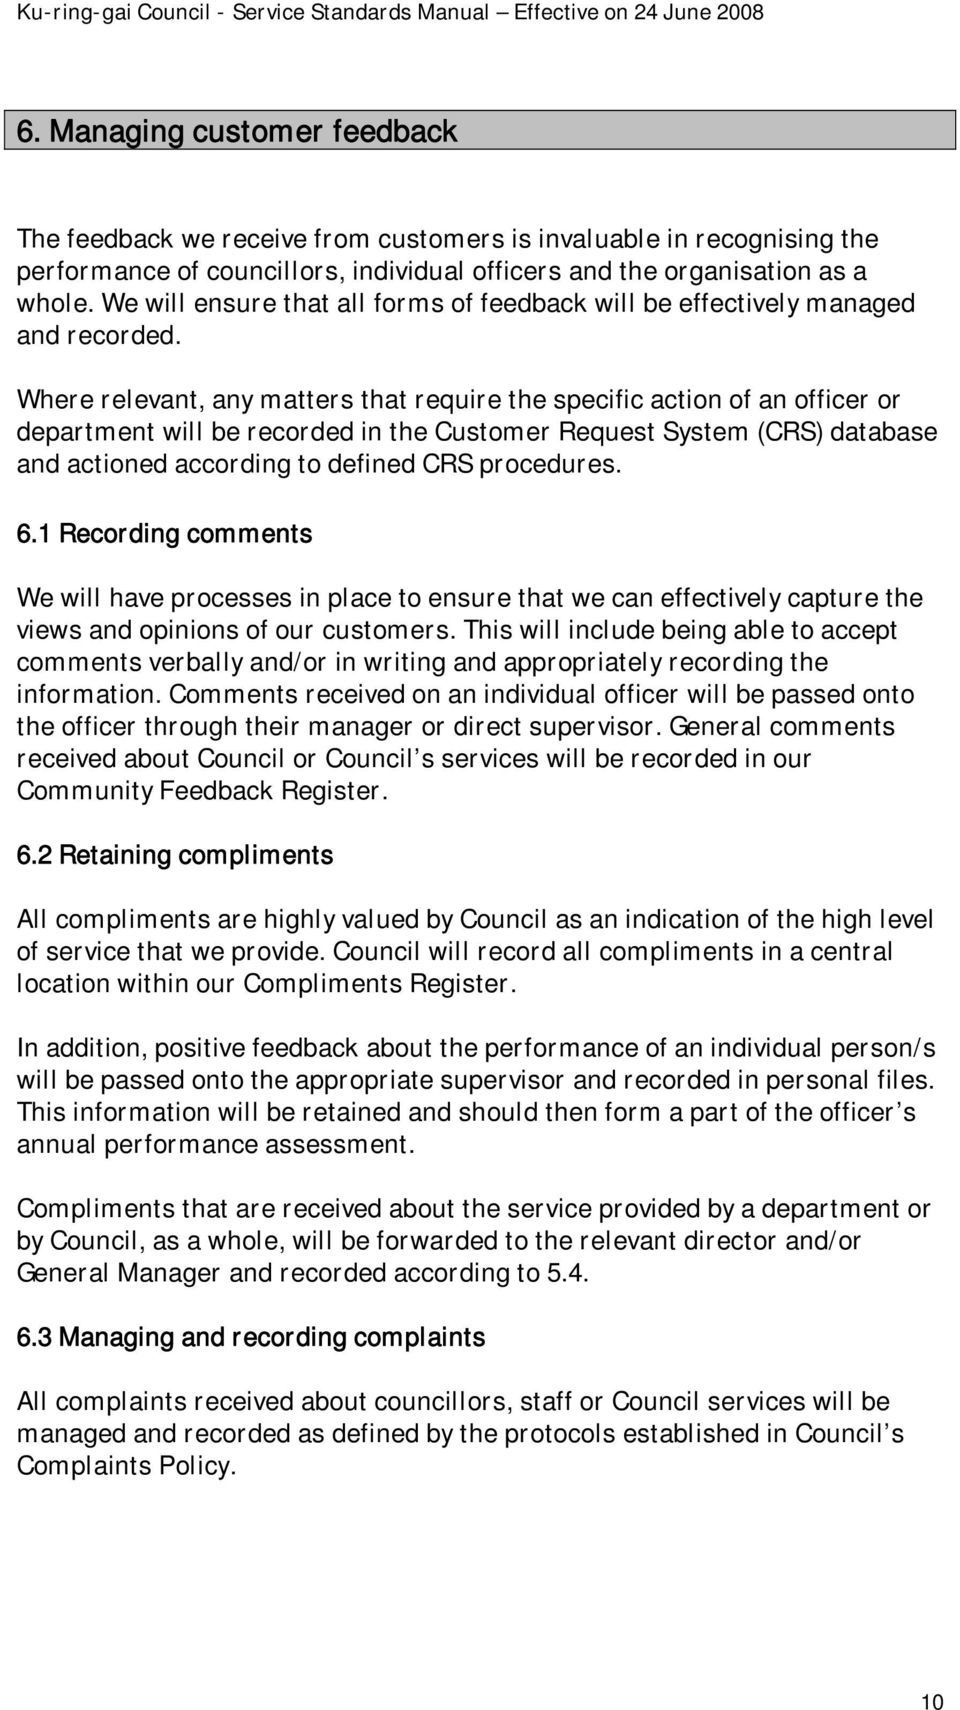 Where relevant, any matters that require the specific action of an officer or department will be recorded in the Customer Request System (CRS) database and actioned according to defined CRS